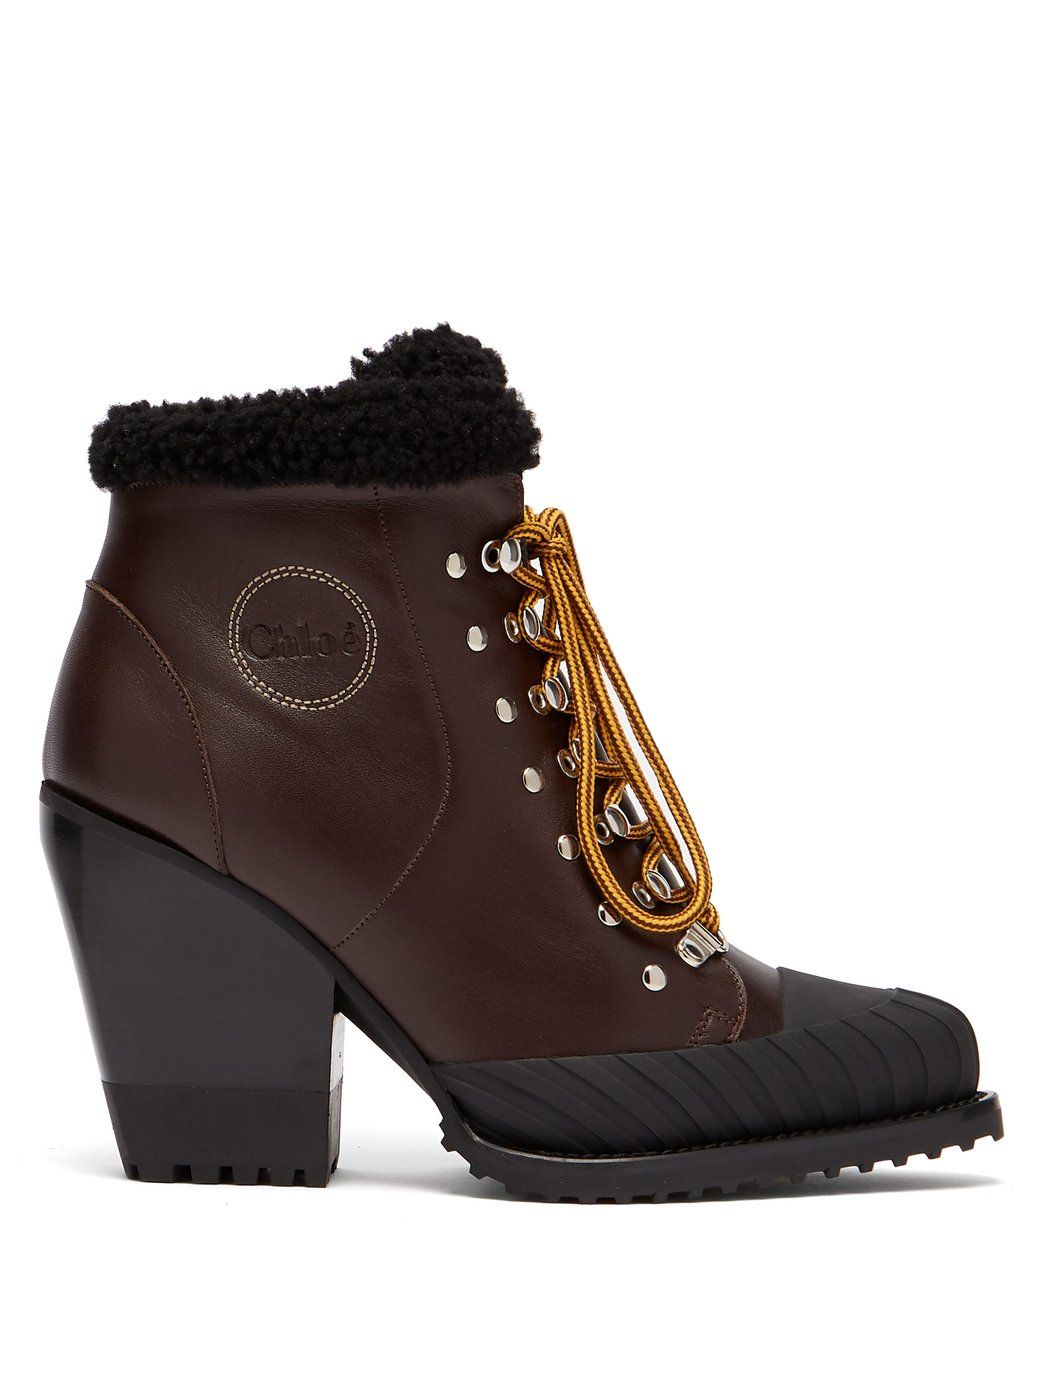 shop-chloe-rylee-lace-up-leather-boots